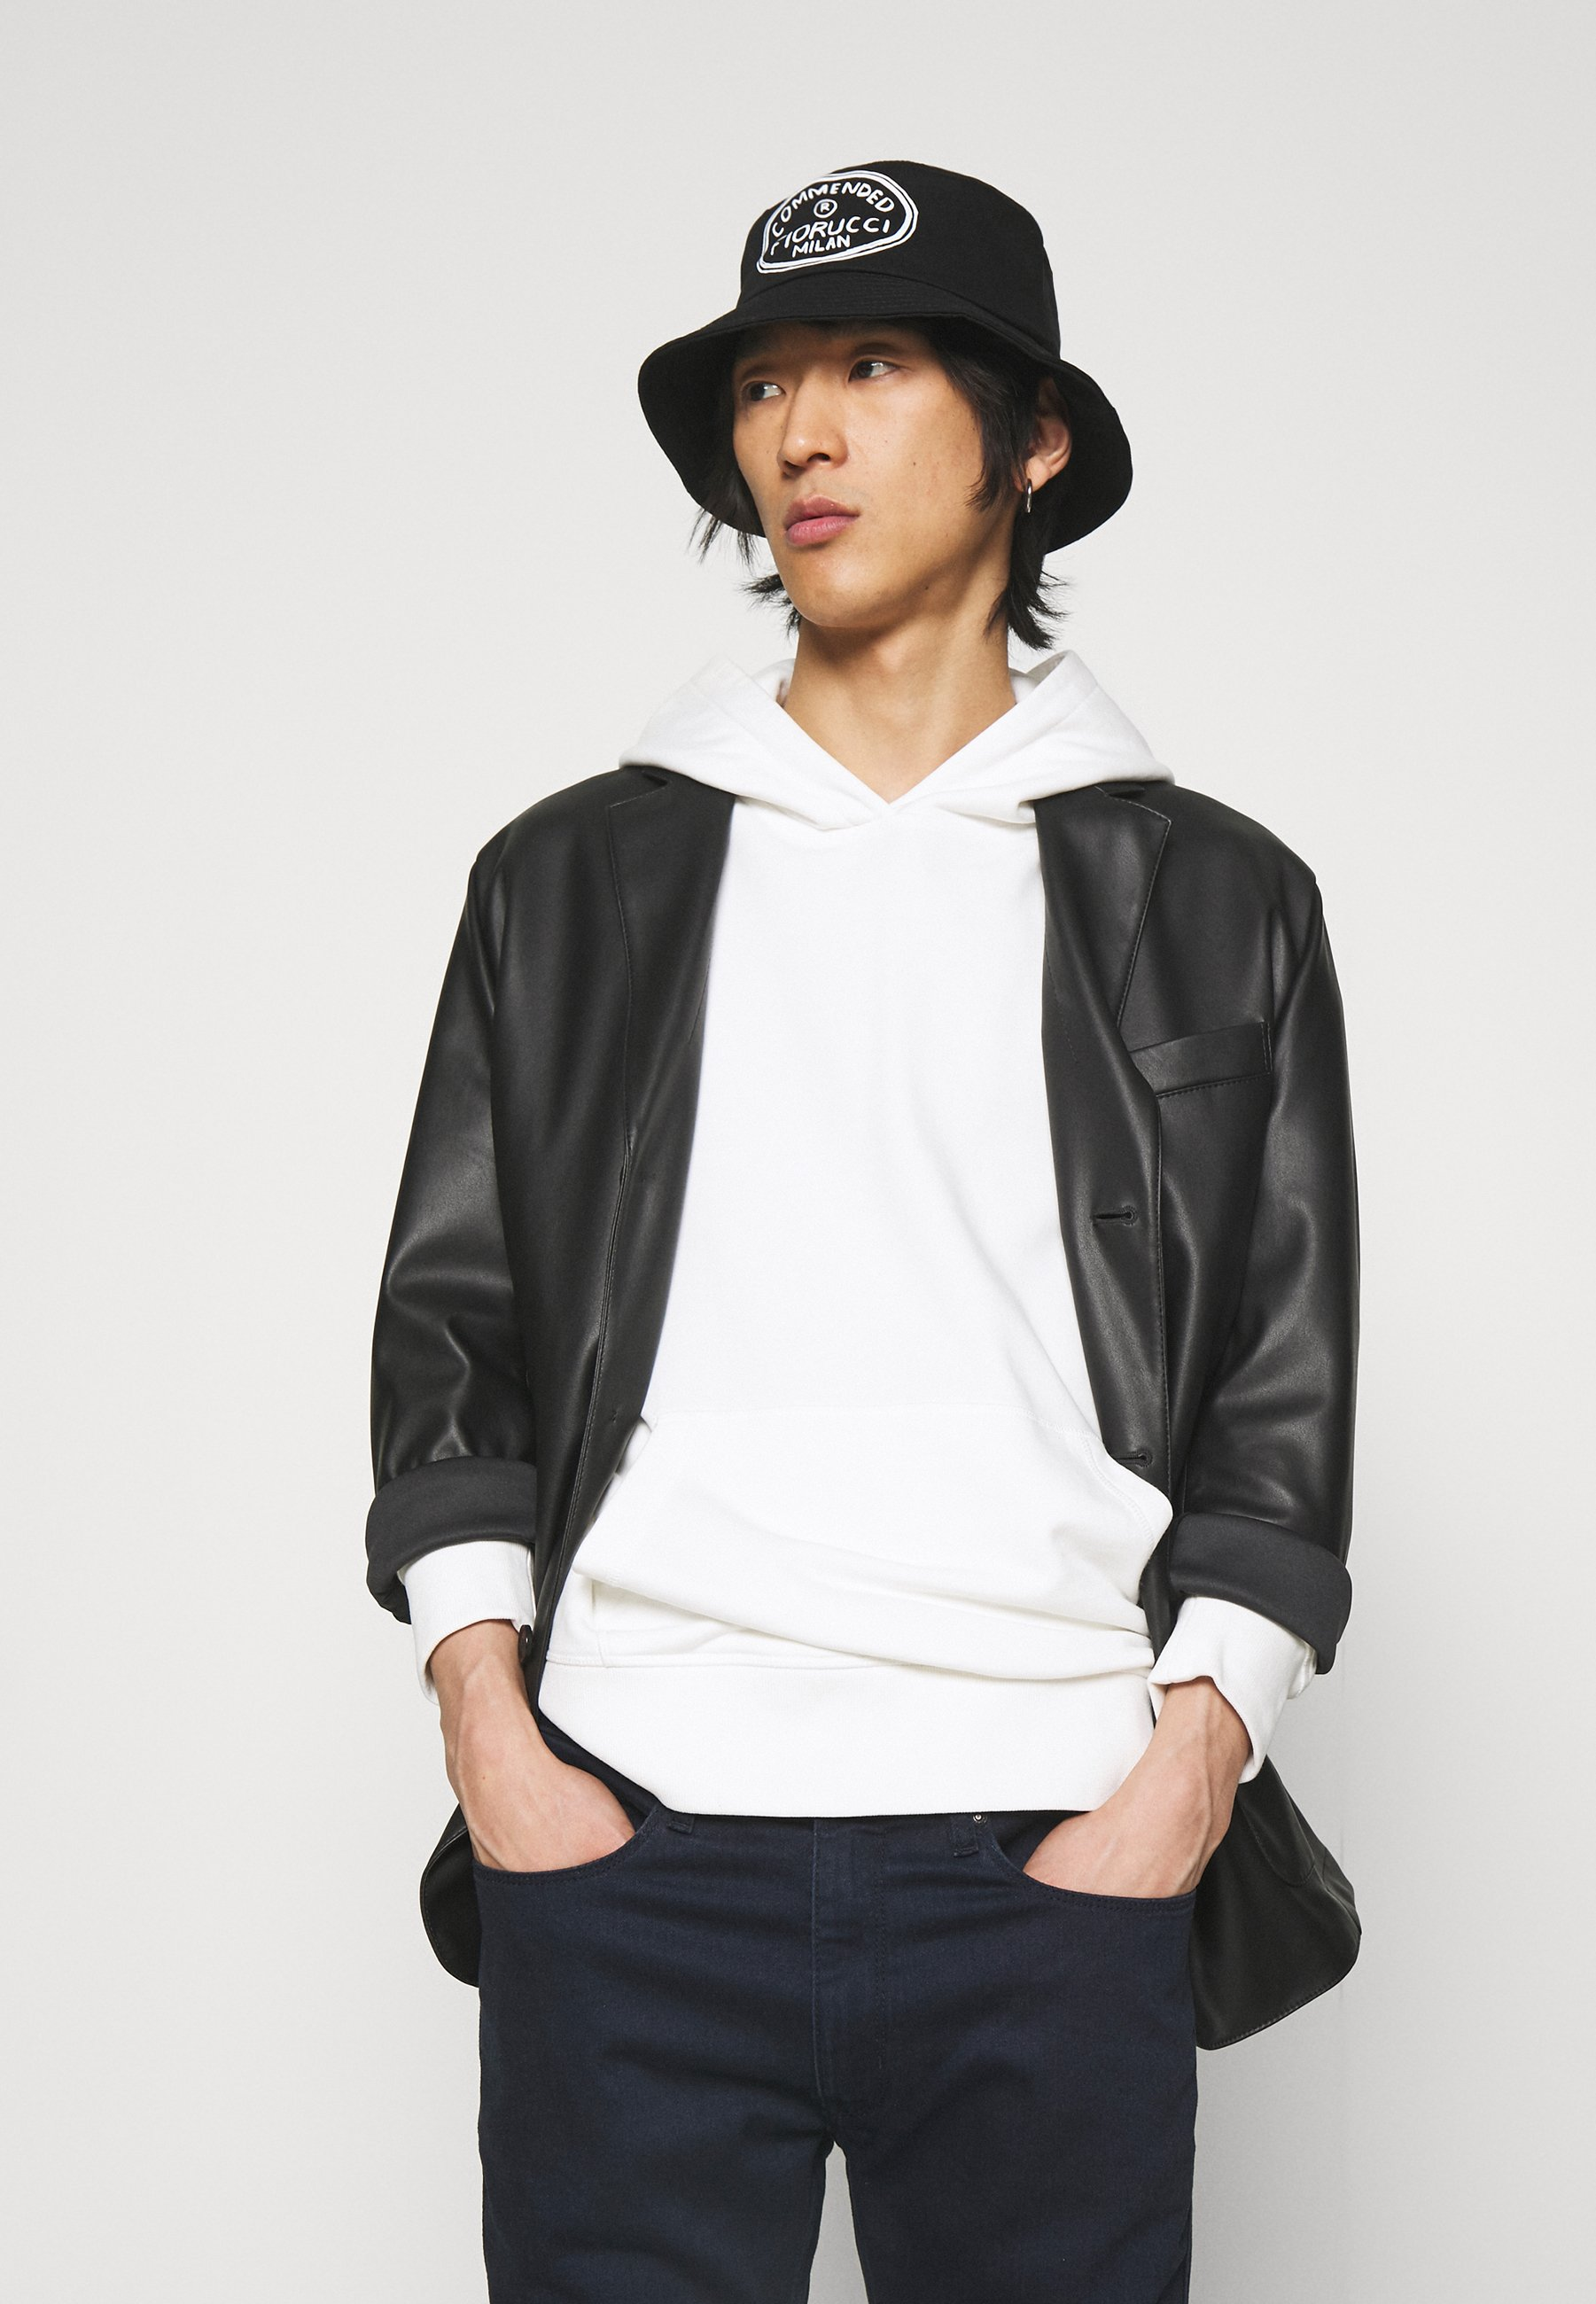 Homme ILLUSTRATED COMMENDED BUCKET HAT UNISEX - Chapeau